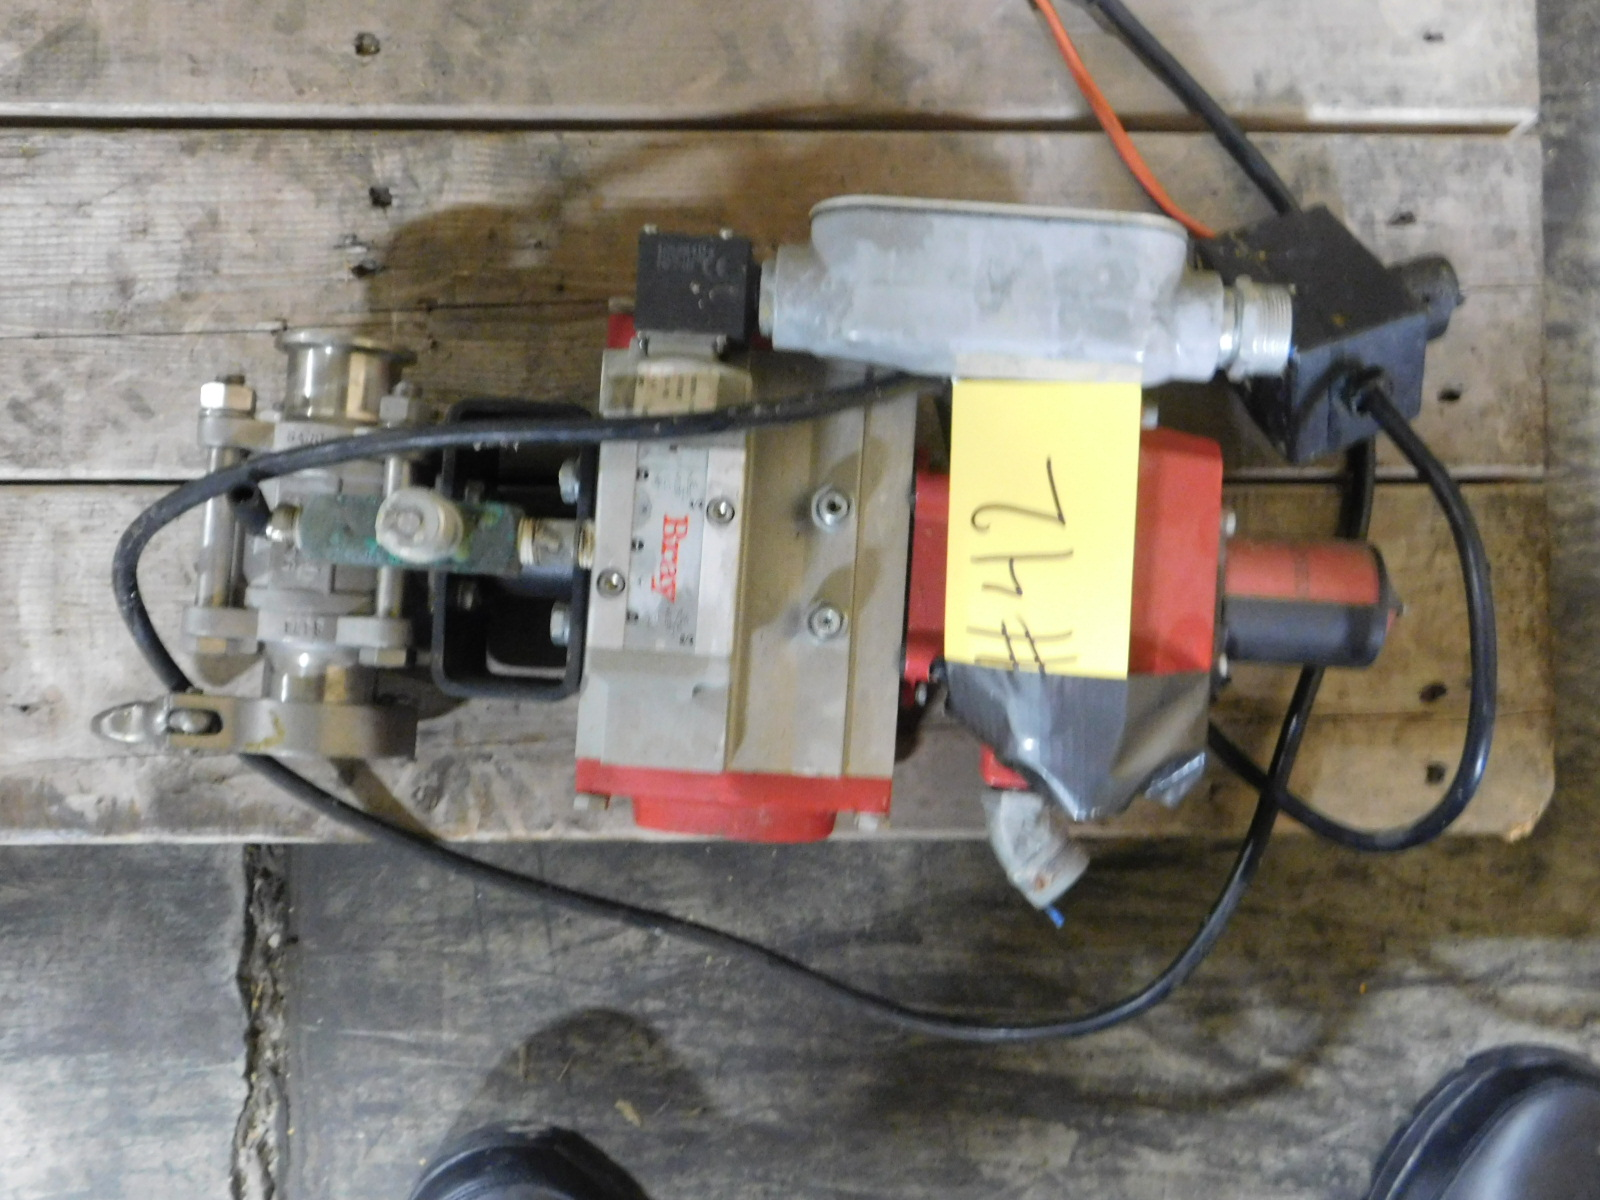 Lot 42 - Bray Vales 50-0406-12610-532,Valve Status Monitor/LMT Switch, SN:930834-11300532 :equipment